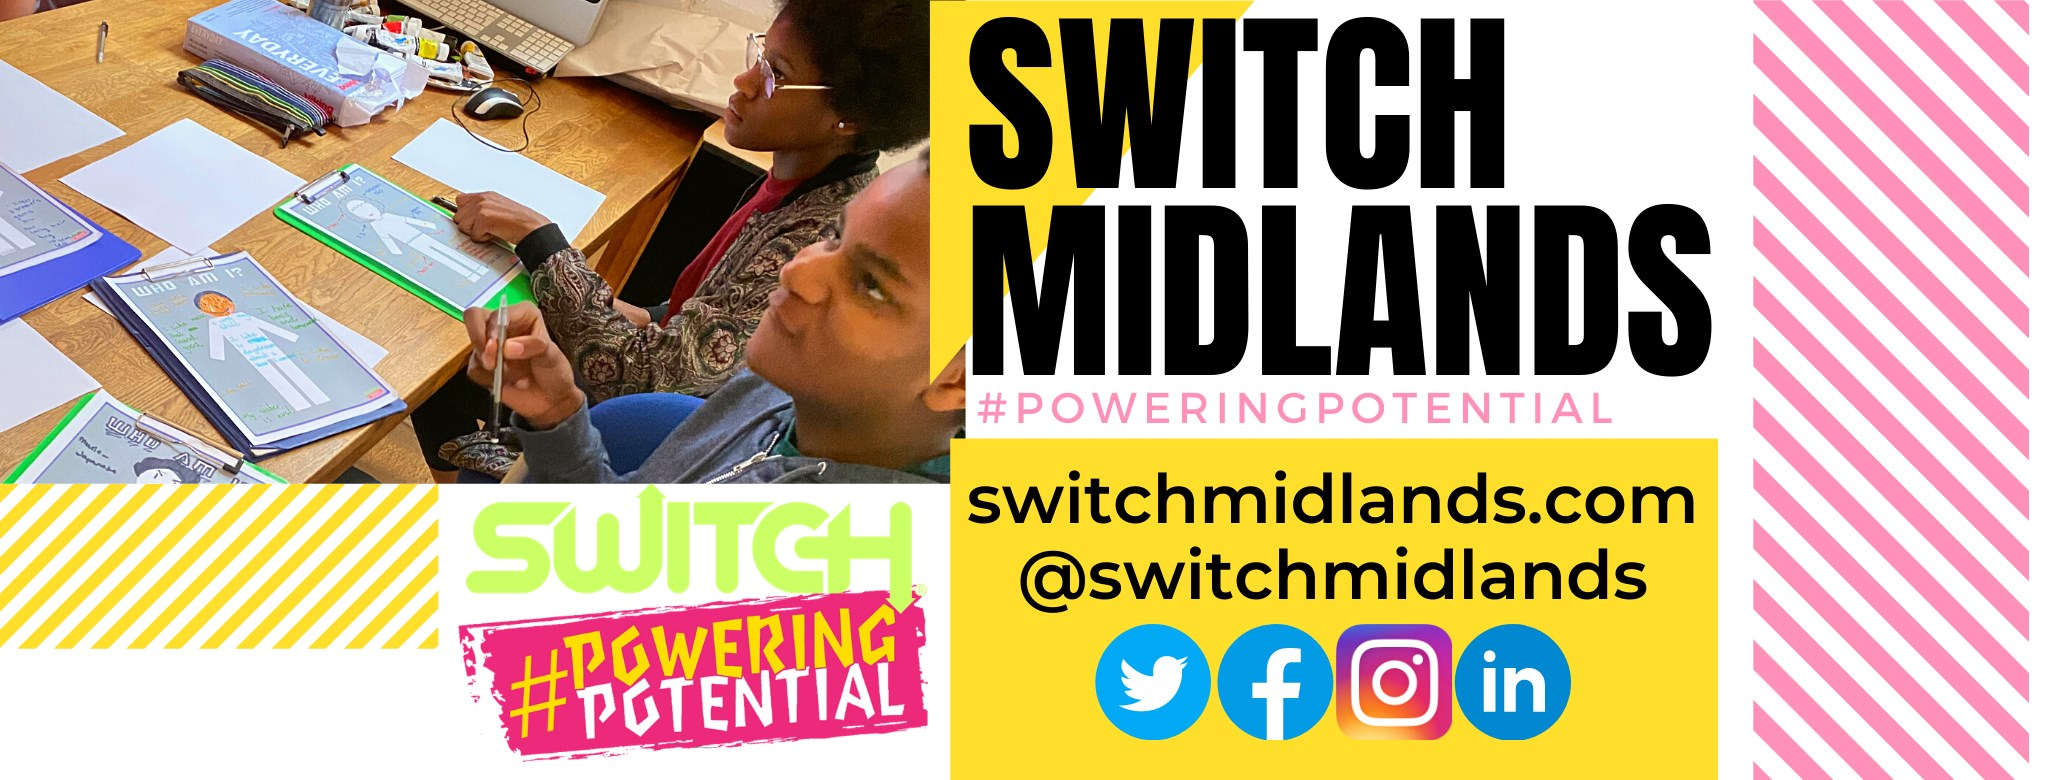 Switch Midlands finds success with the School for Social Entrepreneurs